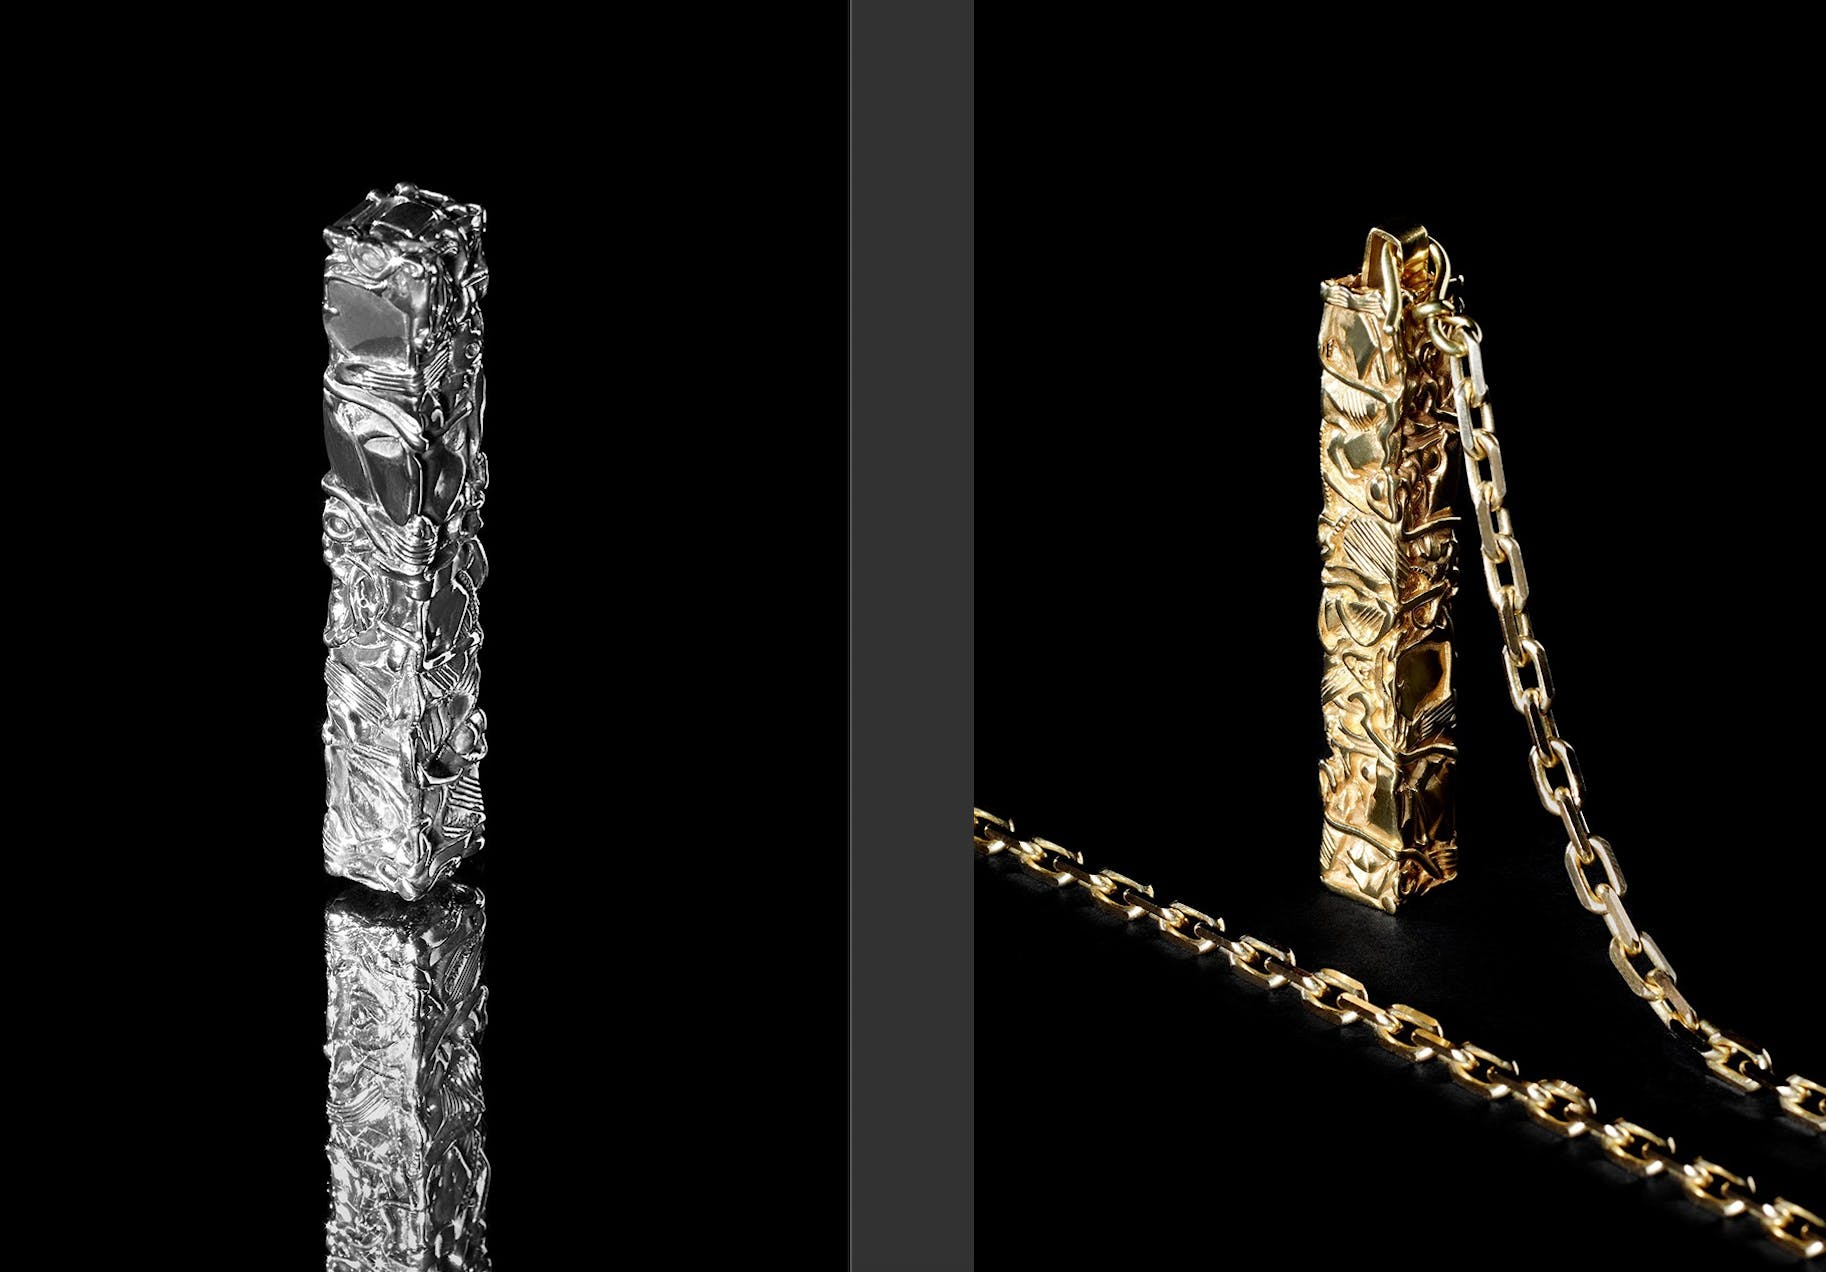 CELINE X CÉSAR BALDACCINI: THE LIMITED-EDITION COMPRESSION PROJECT NECKLACES